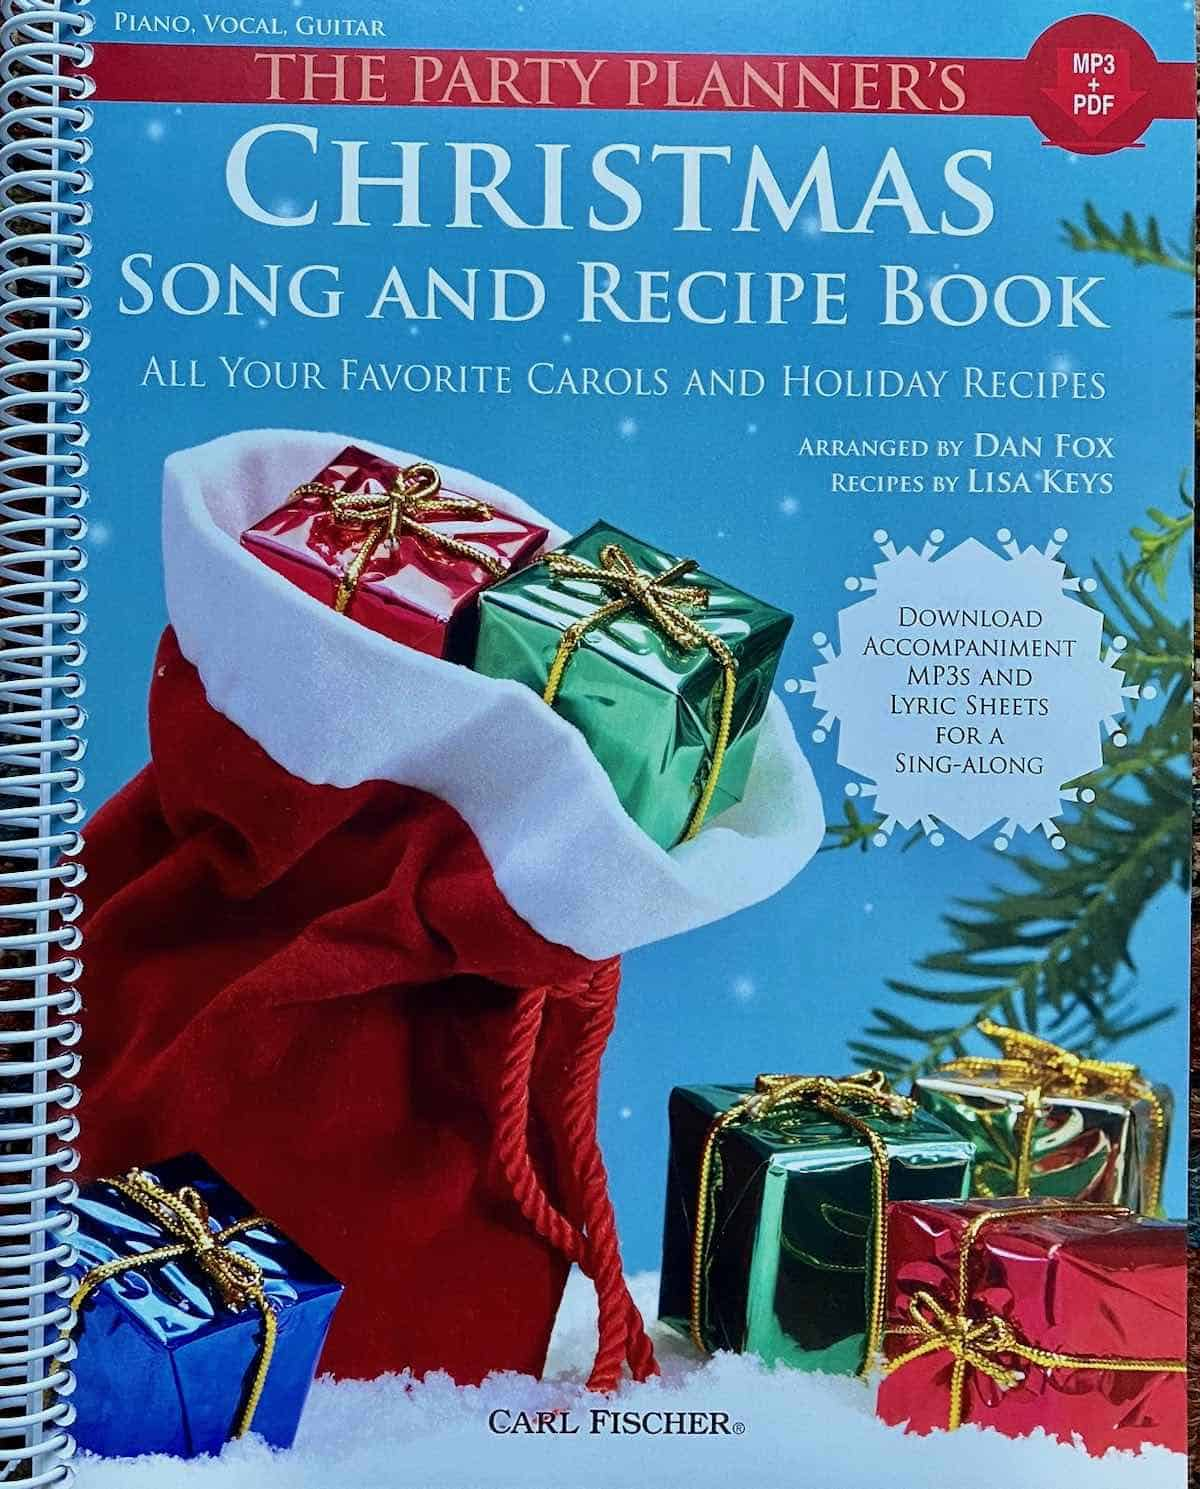 Christmas song and recipe book cover